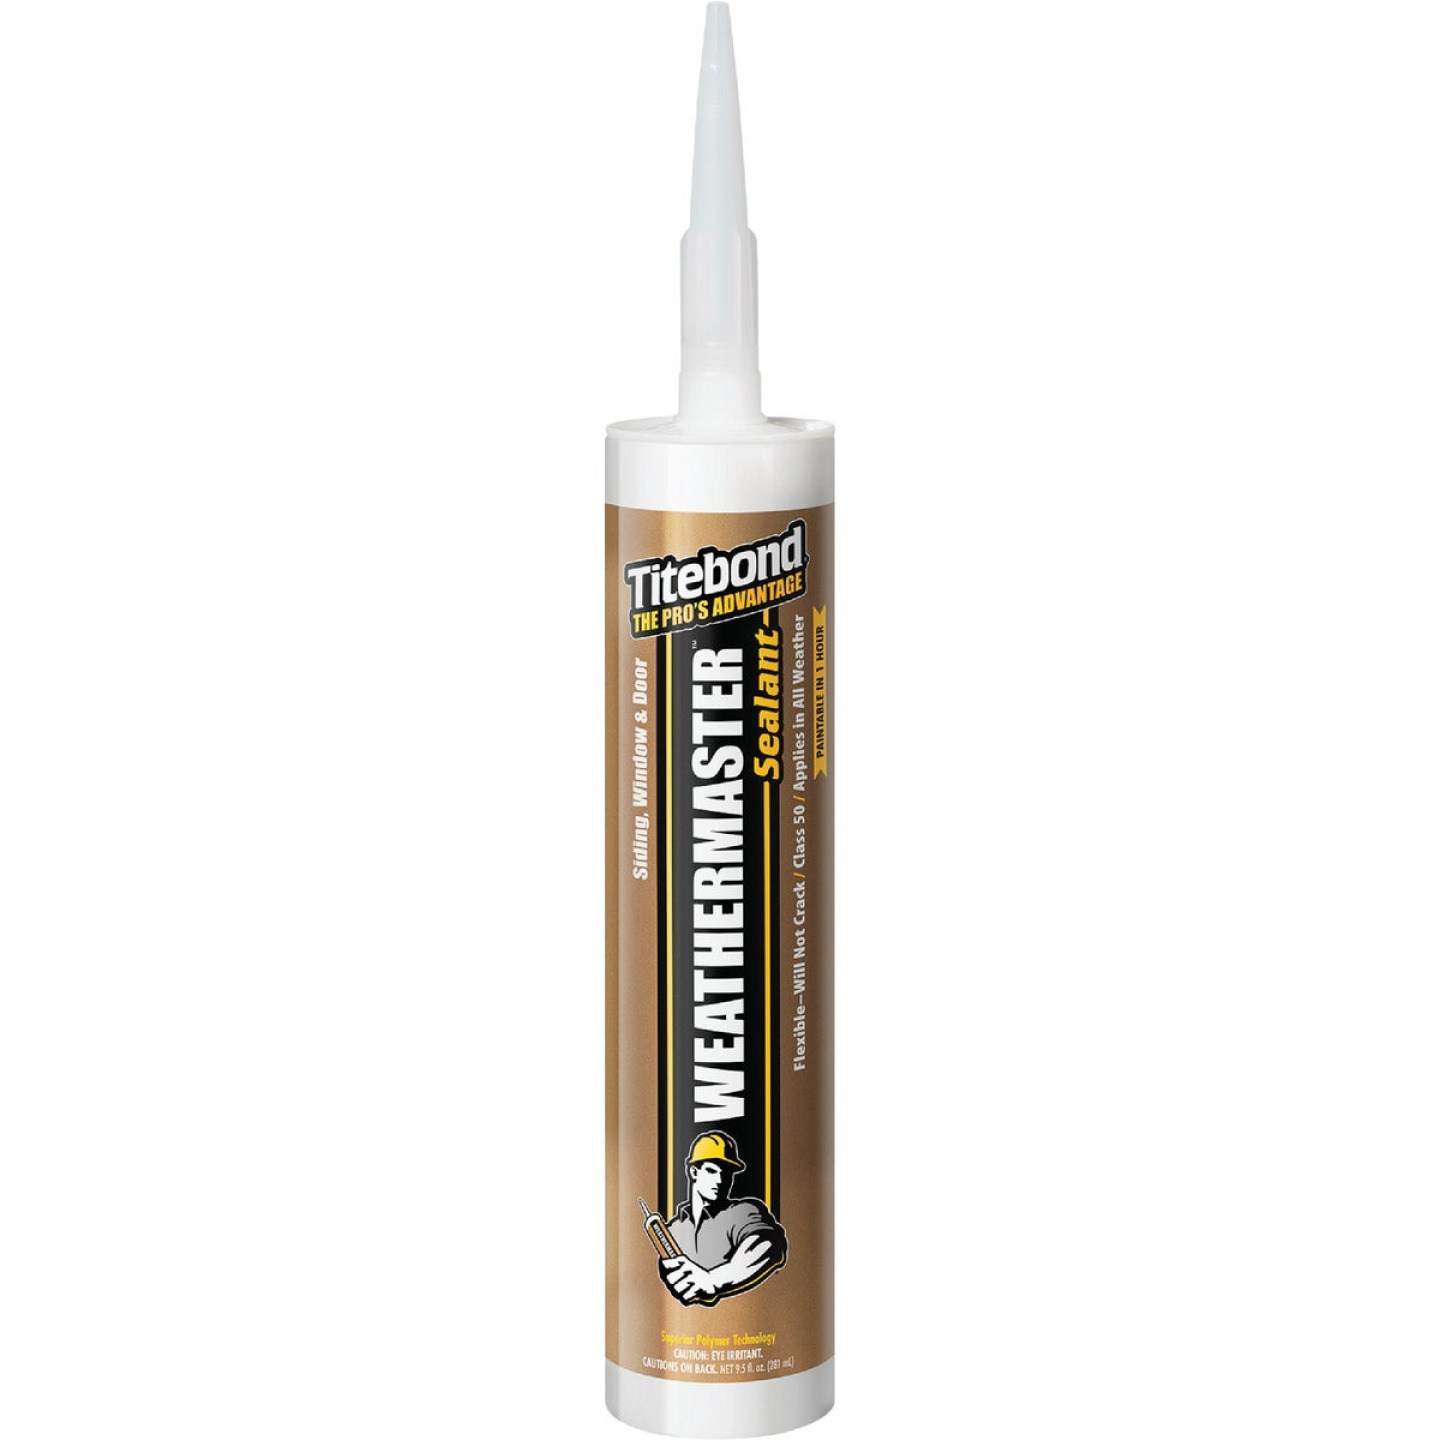 Titebond WeatherMaster 10.1 Oz. Polymer Sealant, 44601 Clay Image 1